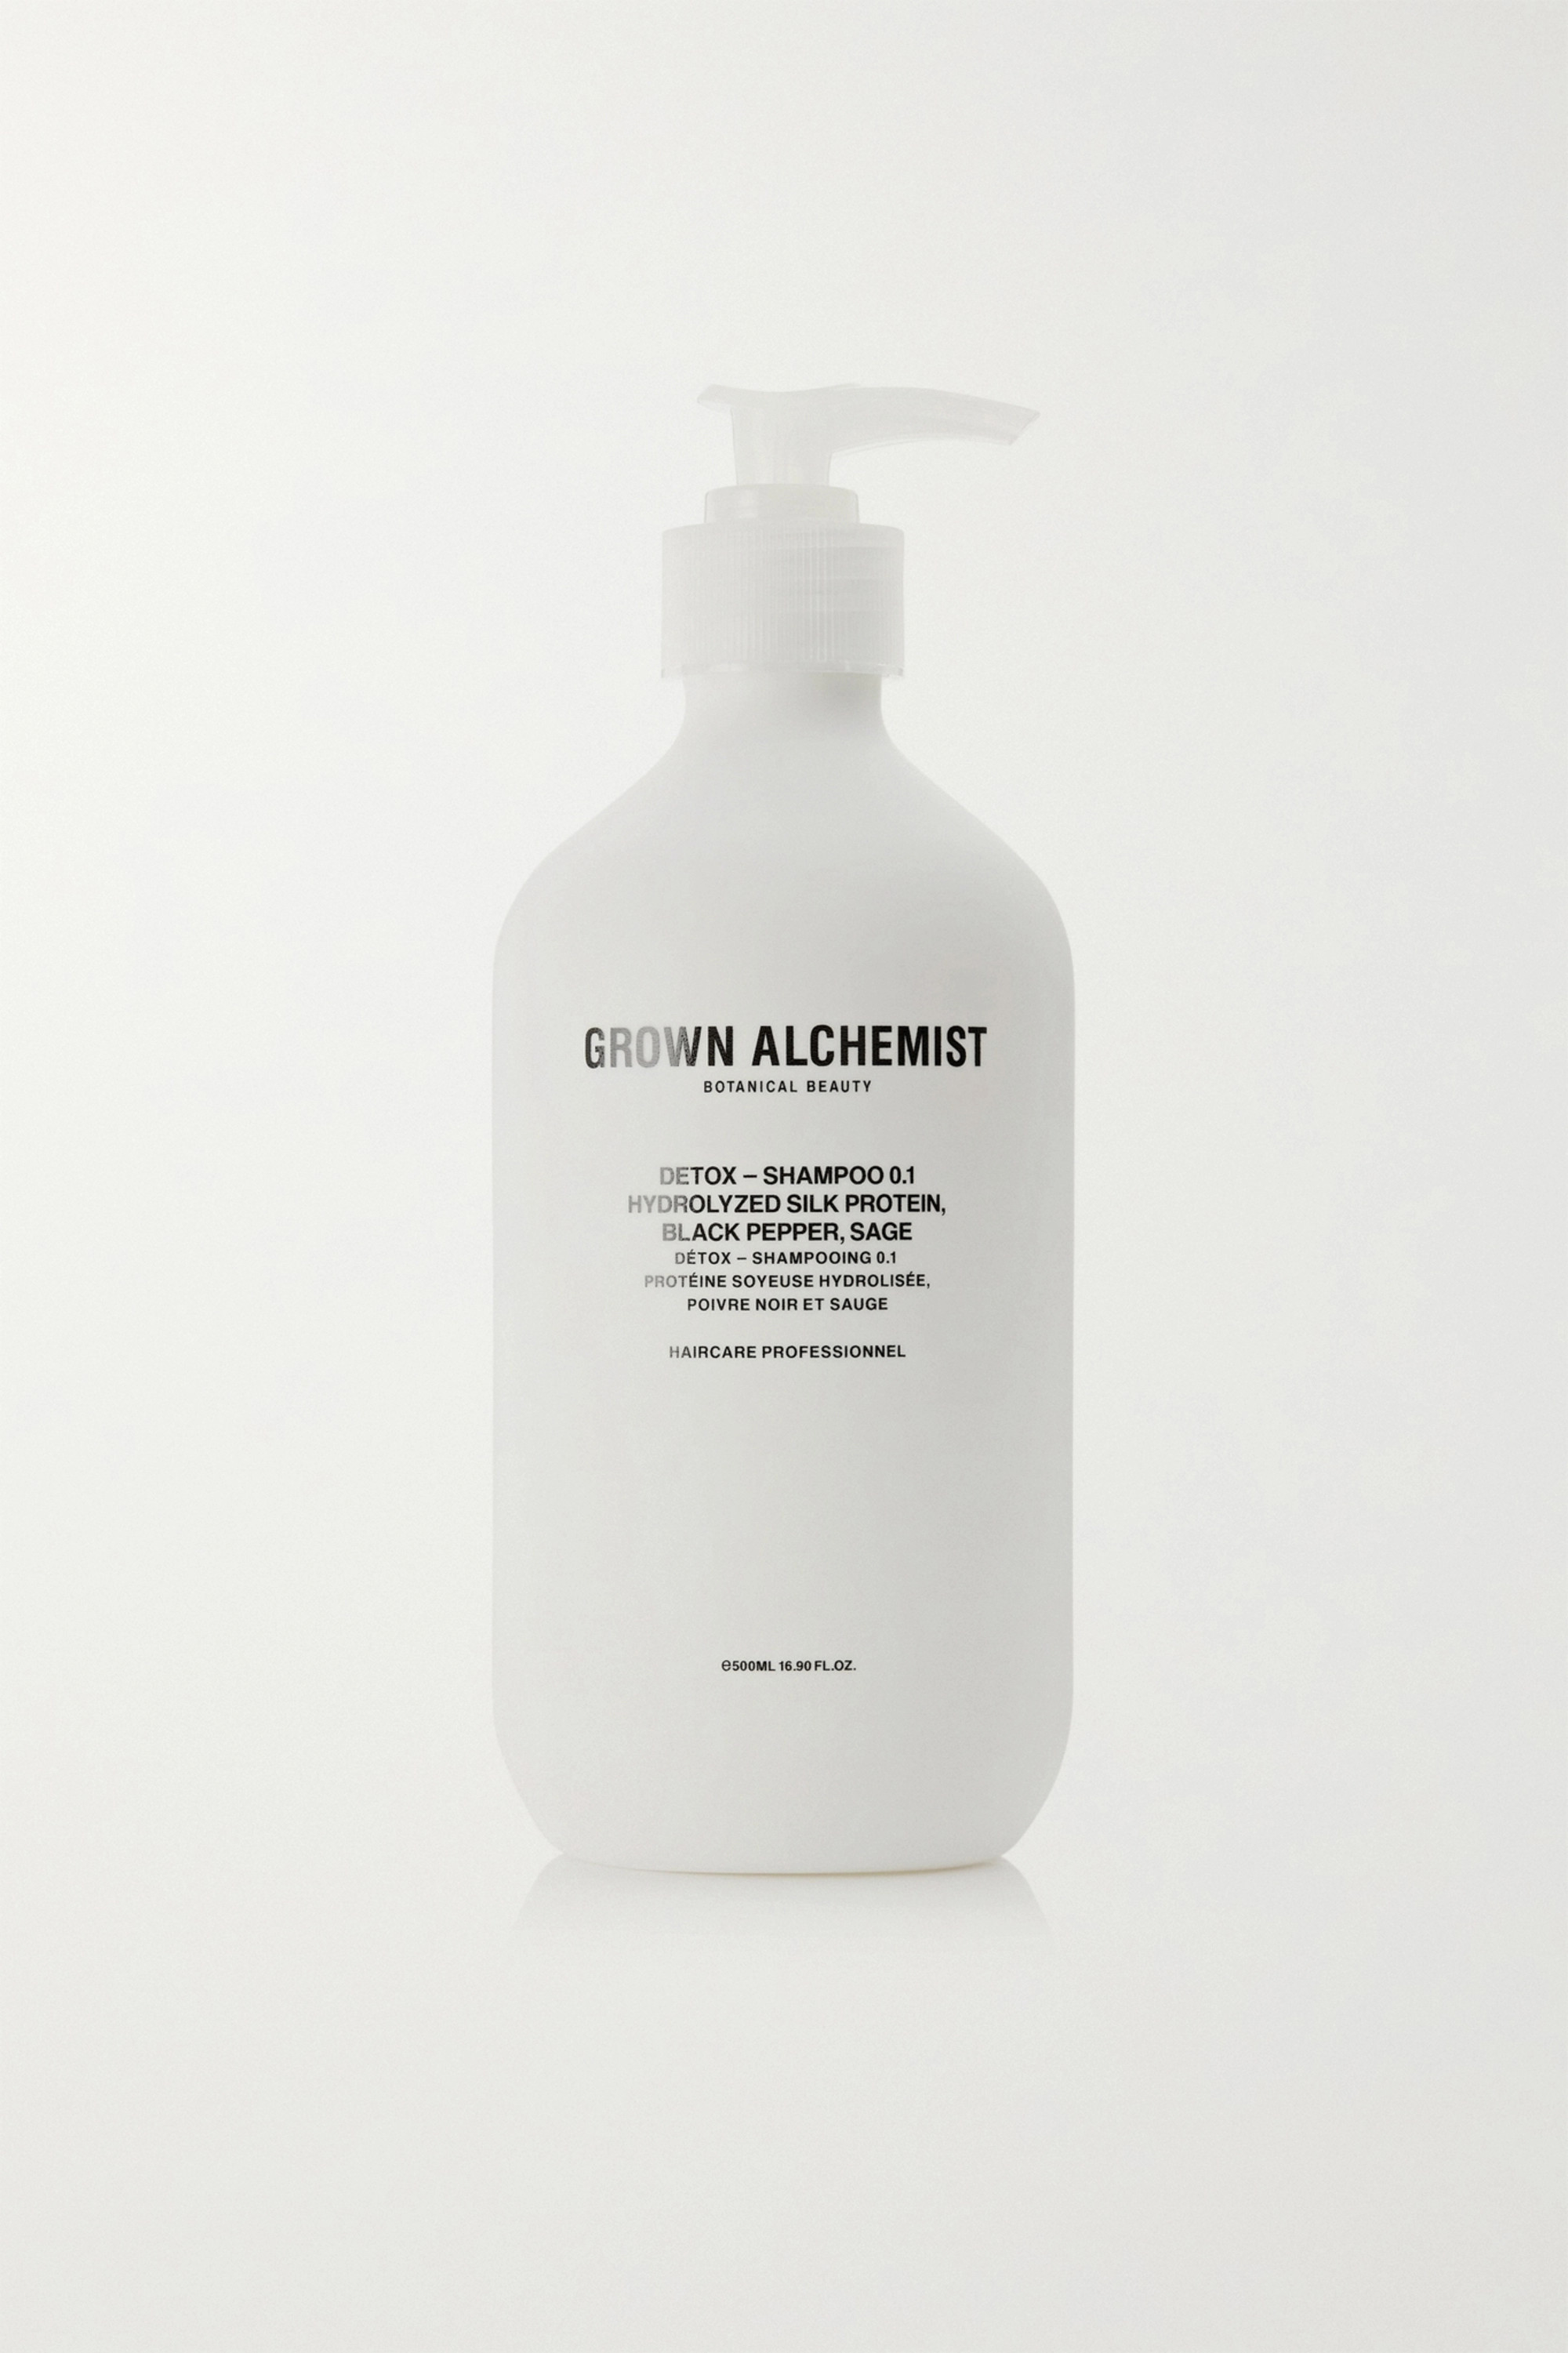 Grown Alchemist Detox - Shampoo 0.1, 500ml